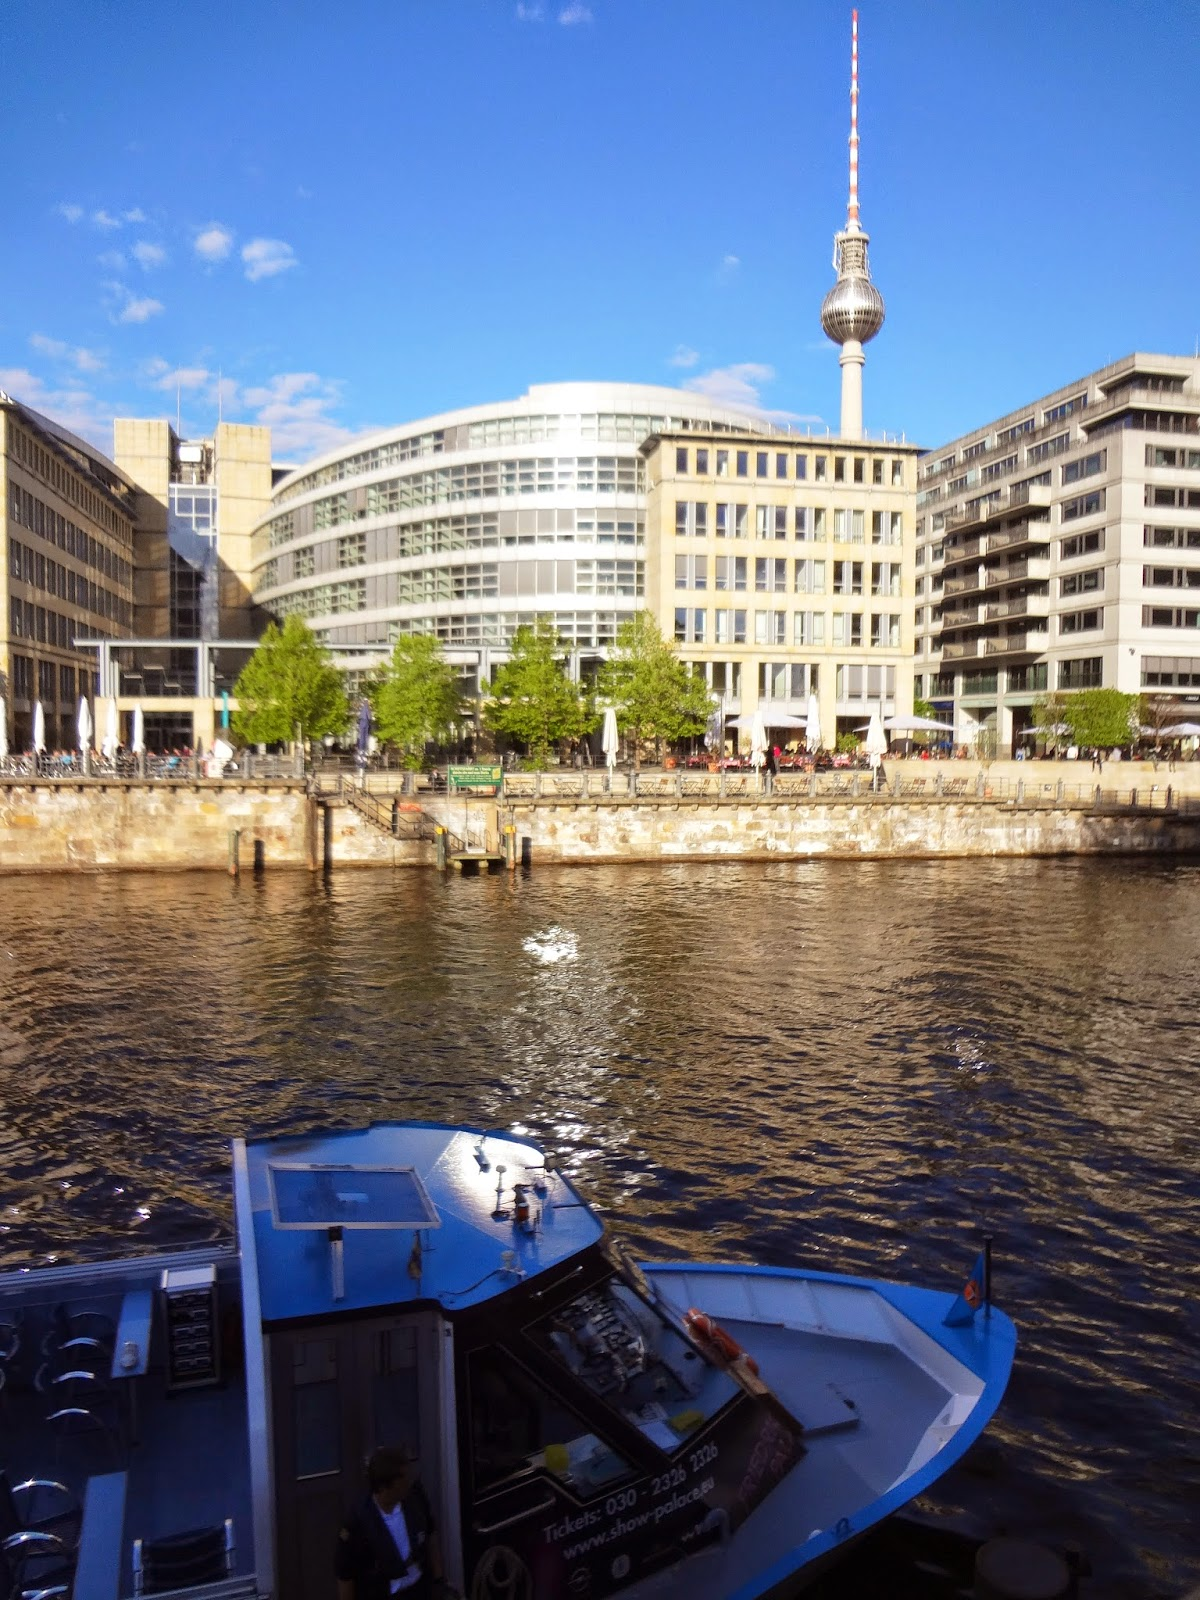 Berlin Boat and Fernsehturm